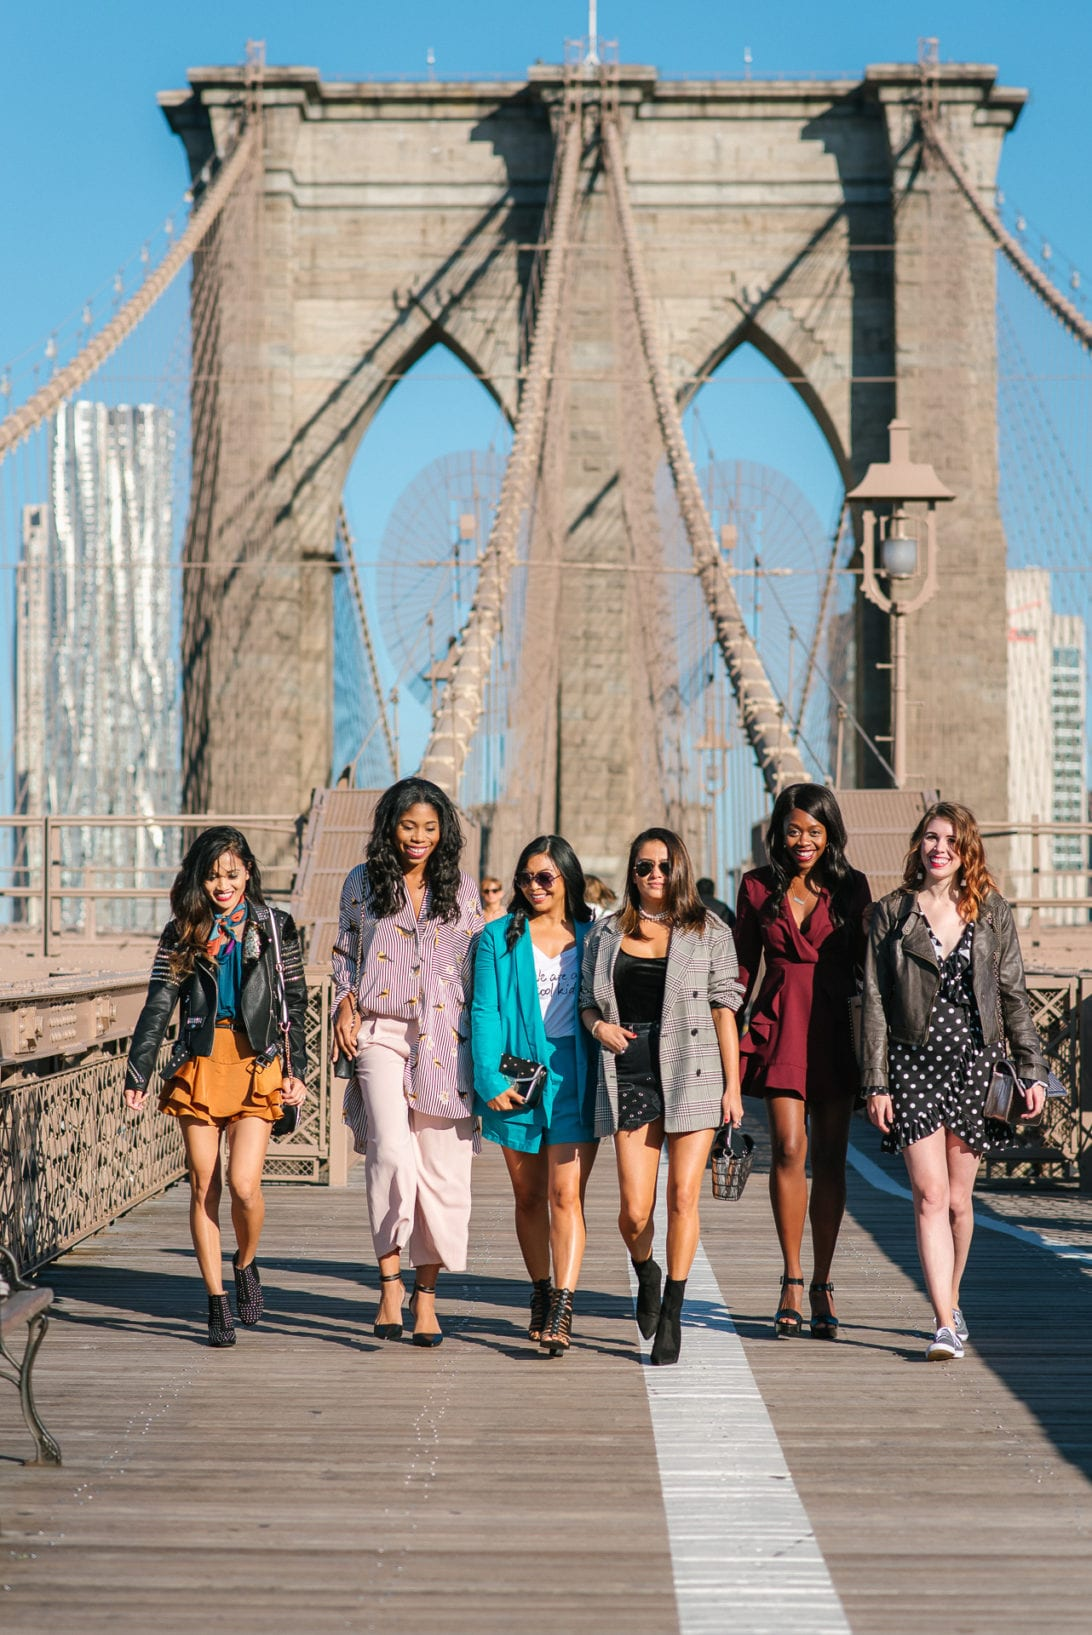 NYFW, NYFW OUTFIT, NYFW STREETSTYLE, New York FASHION WEEK, NYFW 2017, BROOKLYN BRIDGE, BROOKLYN BRIDGE PHOTO SHOOT, AGACI, SATIN SKIRT, RUFFLE TOP, BLACK STUDDED BOOTIES. SCARF, TIE SCARF, CAMERA BAG, BOSS BABES, GIRL GANG, BLOGGER BABES